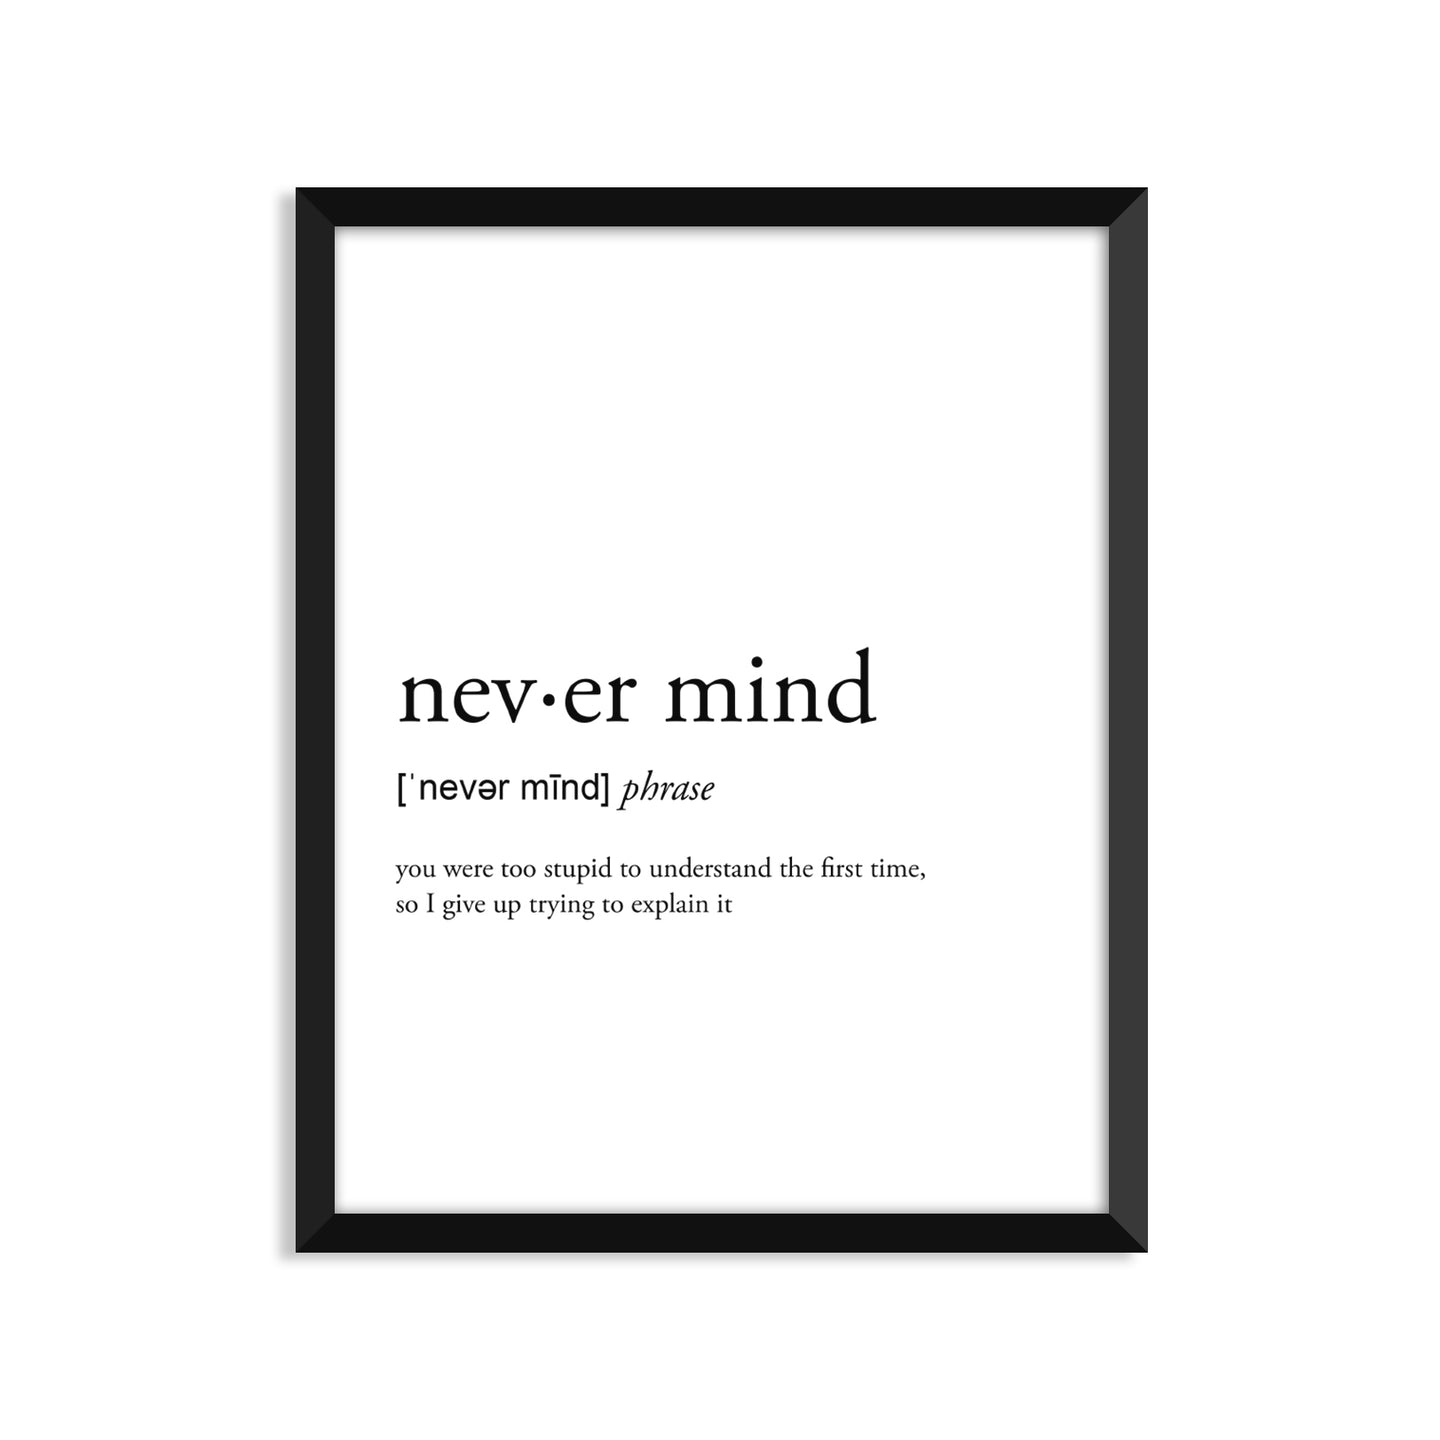 Never Mind definition art print or greeting card